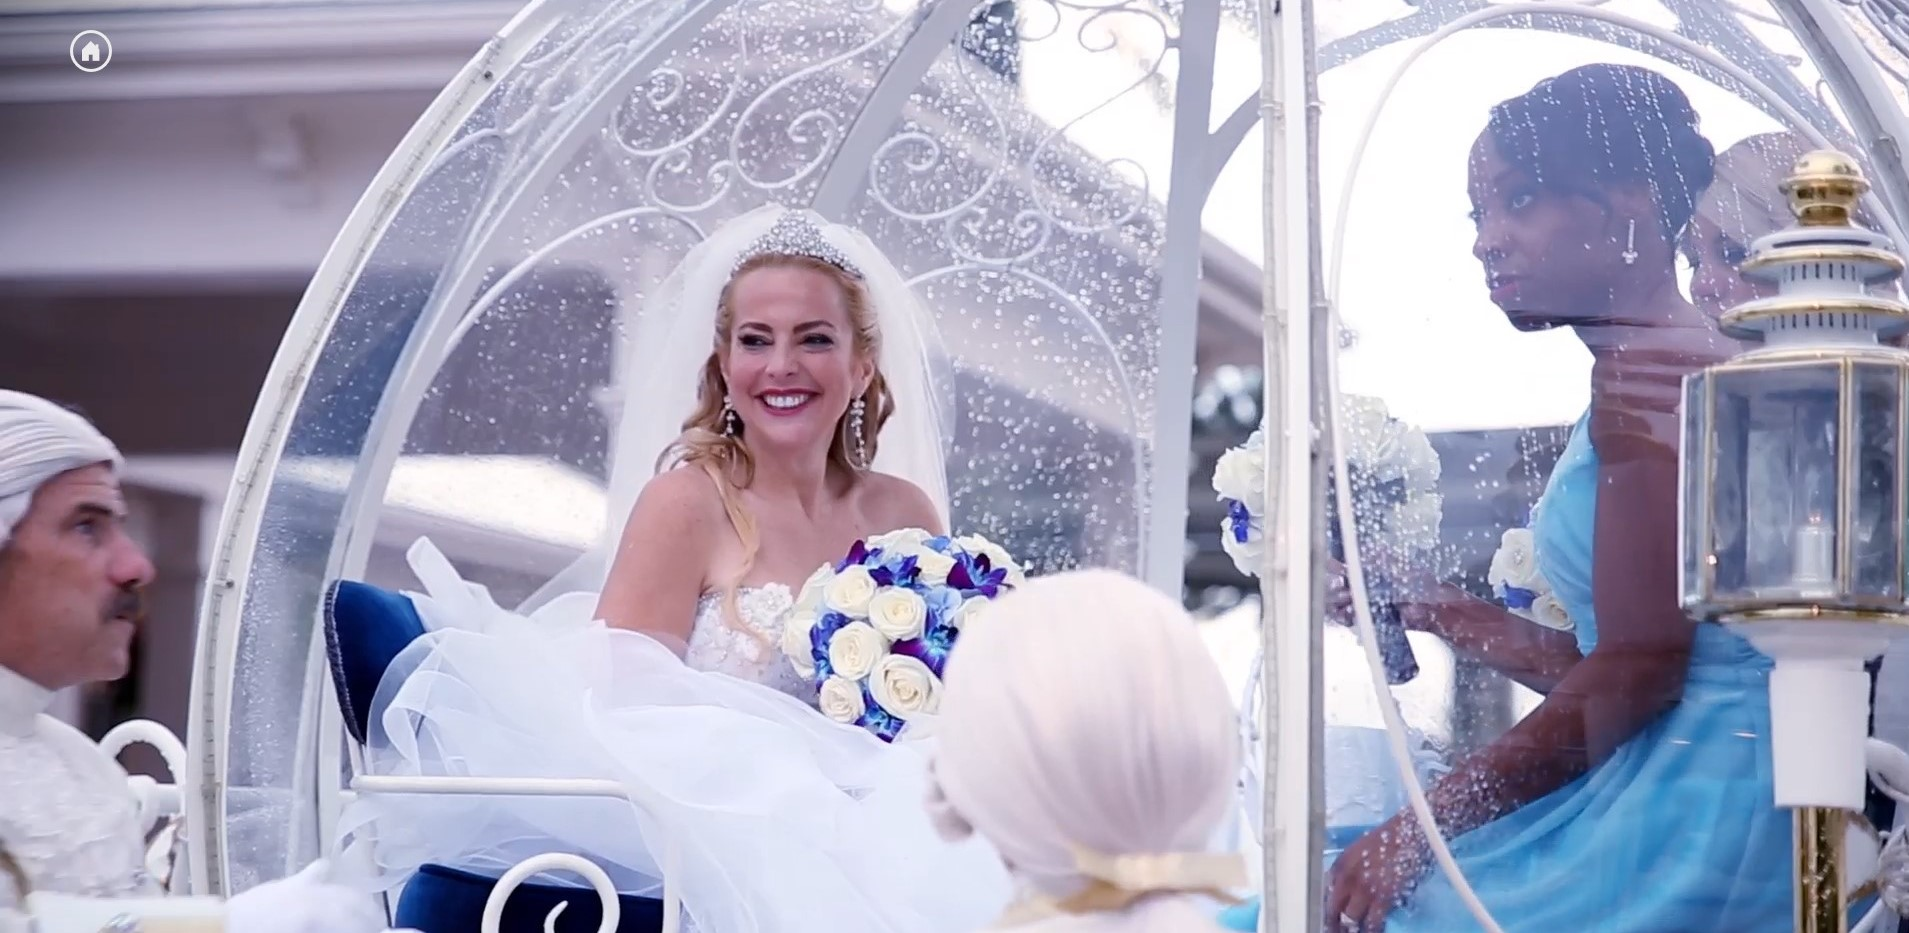 Paraplegic Tami Martin lost 87 kigs and walked down the aisle